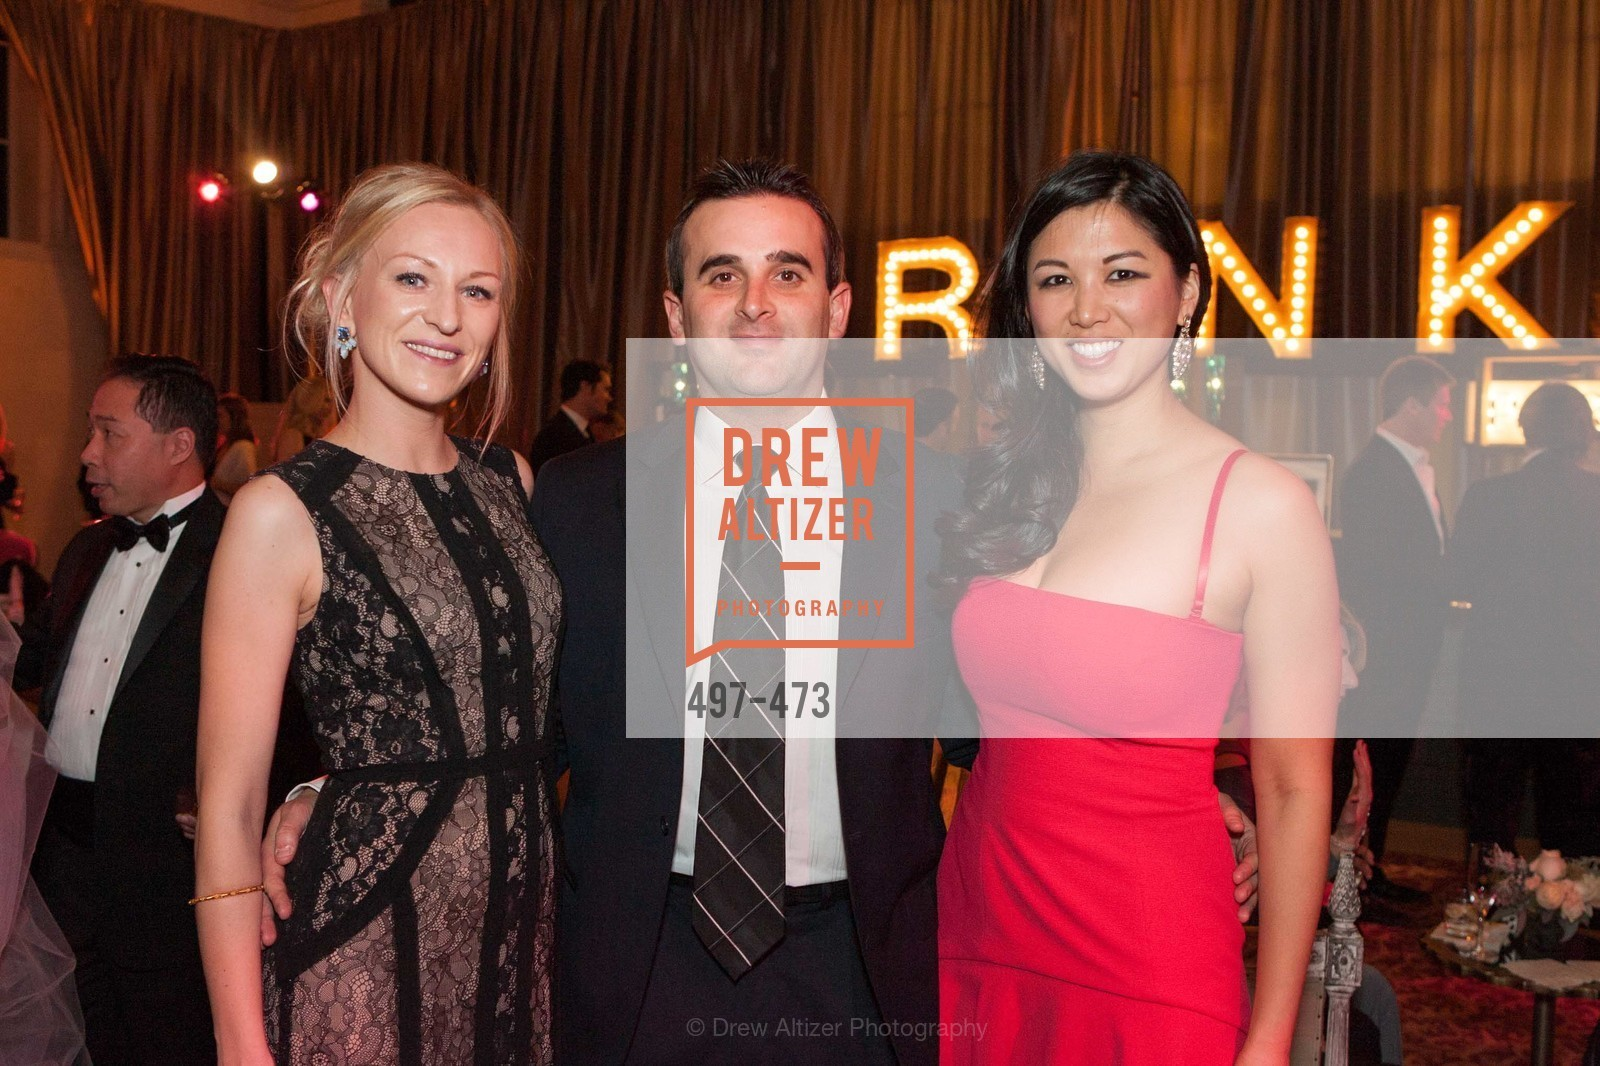 Natasha Yarushkina, Aaron Aiken, Emily Hu, ENCORE! at San Francisco BALLET'S 2014 Season Opening Night Gala, US. US, January 22nd, 2014,Drew Altizer, Drew Altizer Photography, full-service event agency, private events, San Francisco photographer, photographer California